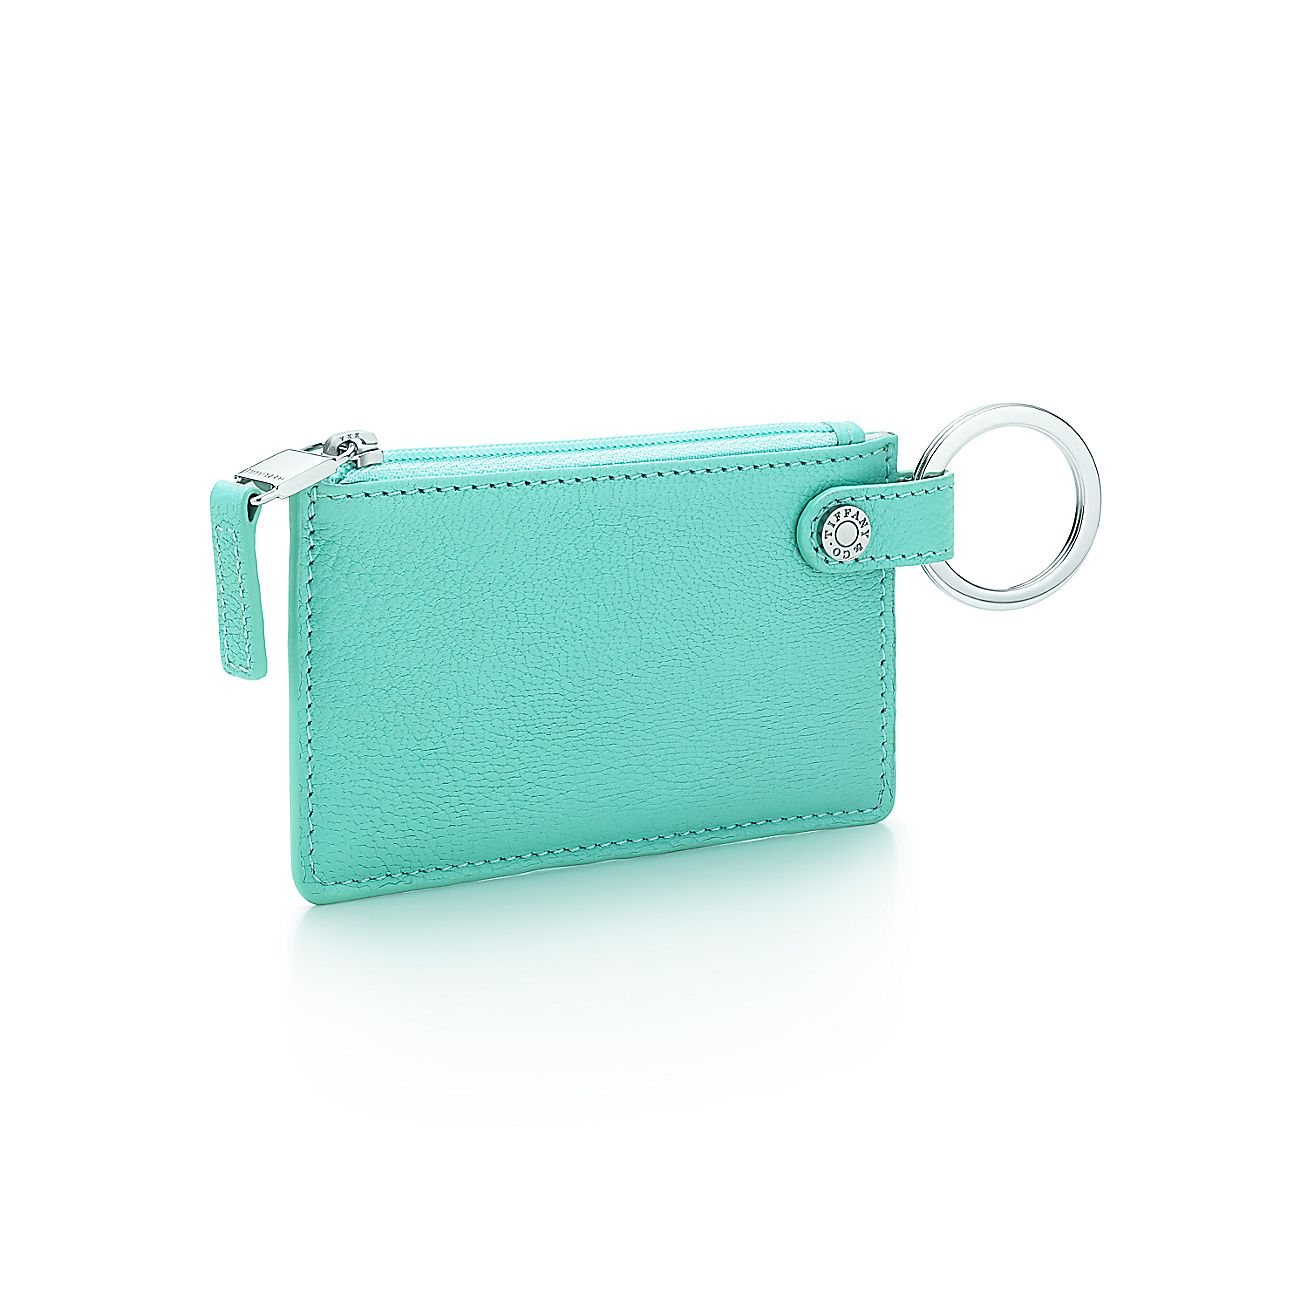 Card case in tiffany blue grain leather more colors for Tiffany business card case